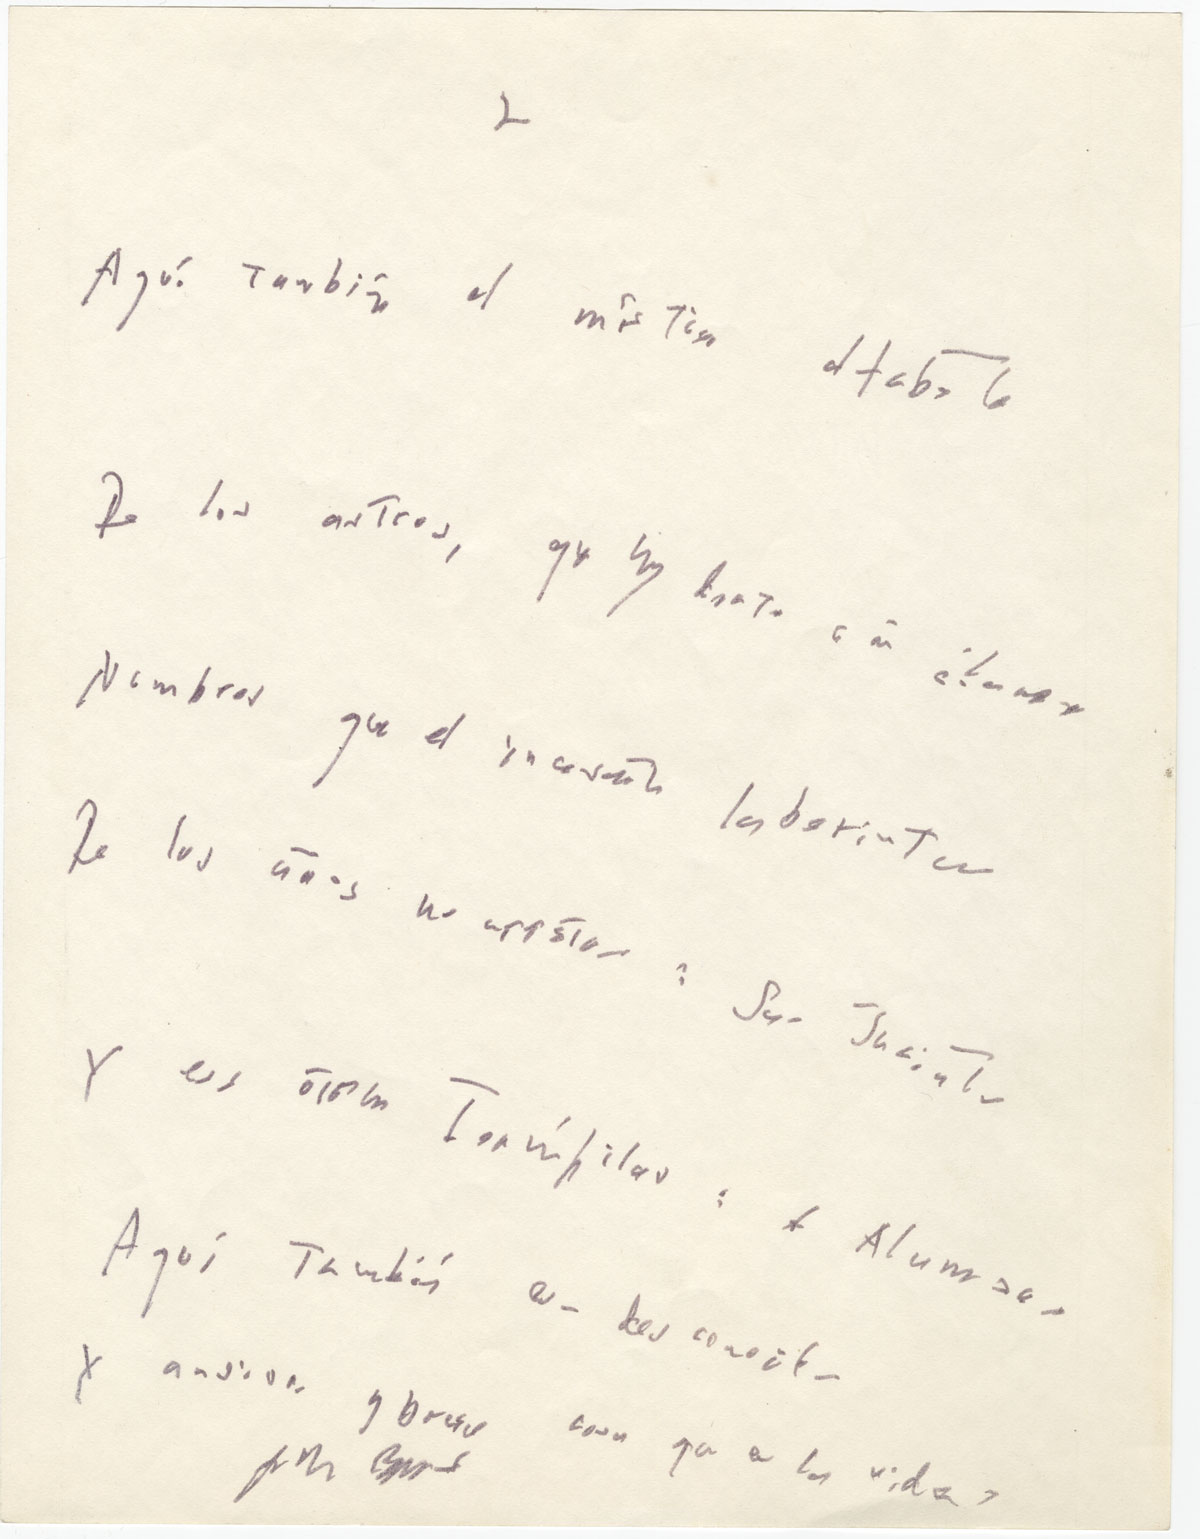 "Jorge Luis Borges,""Texas"" (page 2). From the manuscripts collection at the Harry Ransom Center. / Jorge Luis Borges, ""Texas"" (página 2). De la colección de manuscritos en el Harry Ransom Center."